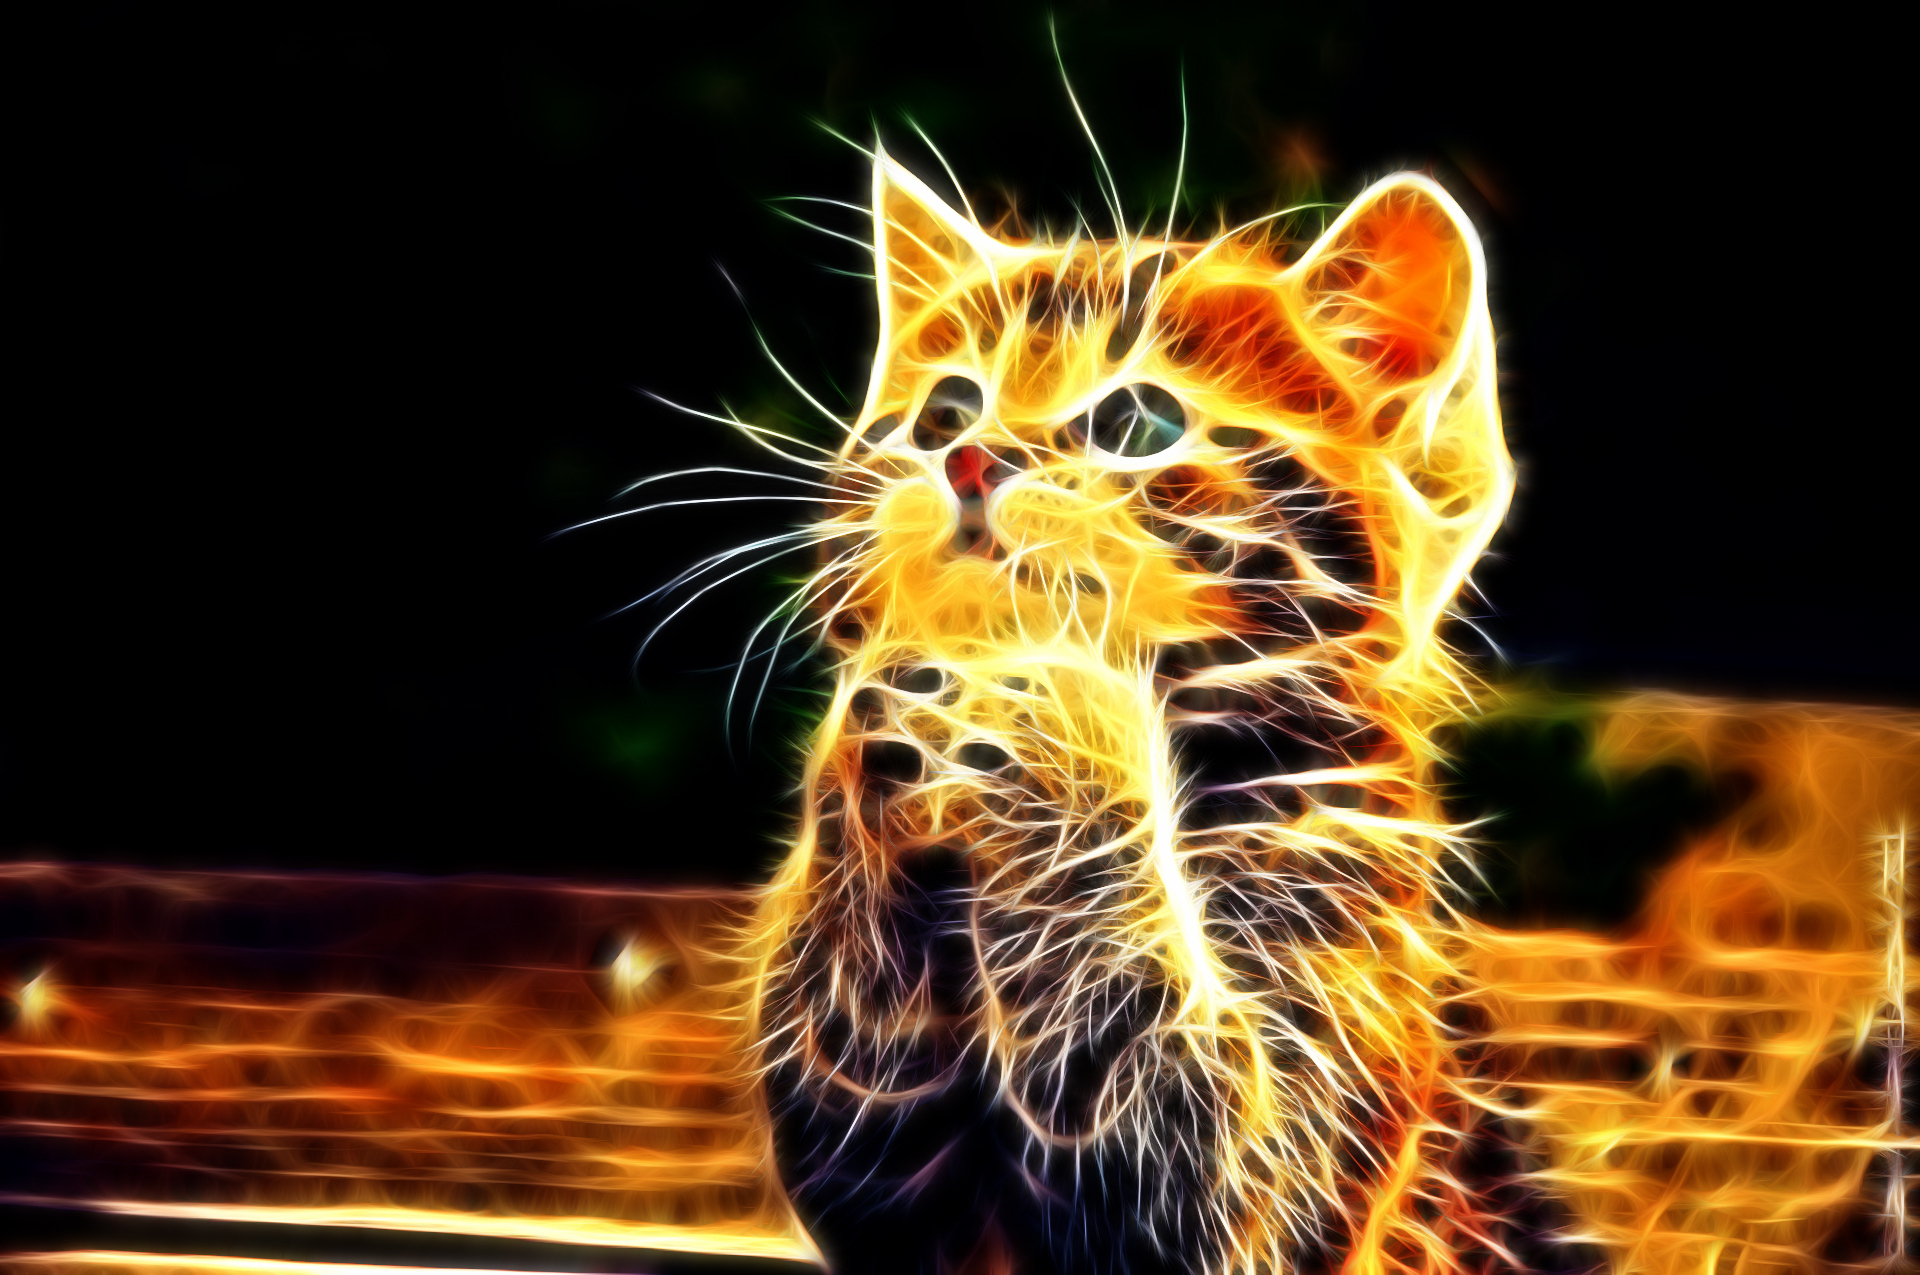 3d moving cats wallpaper - wallpapersafari